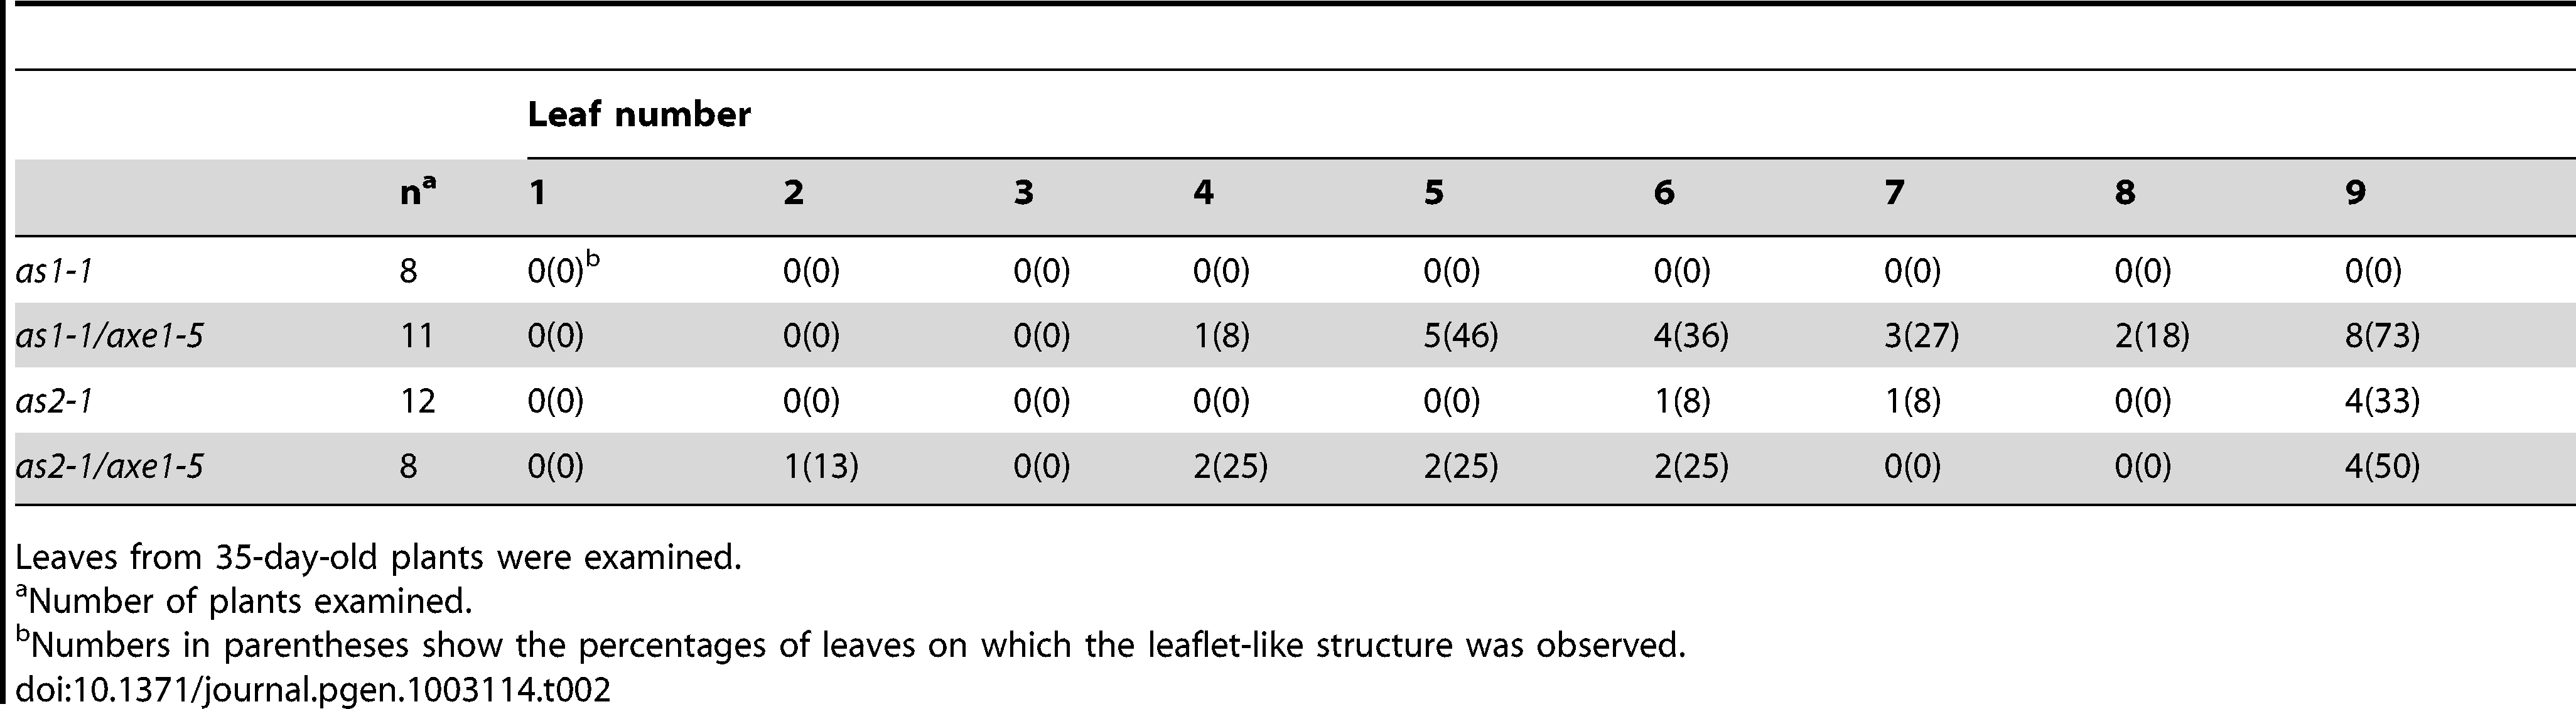 Frequency of leaflet-like structure.